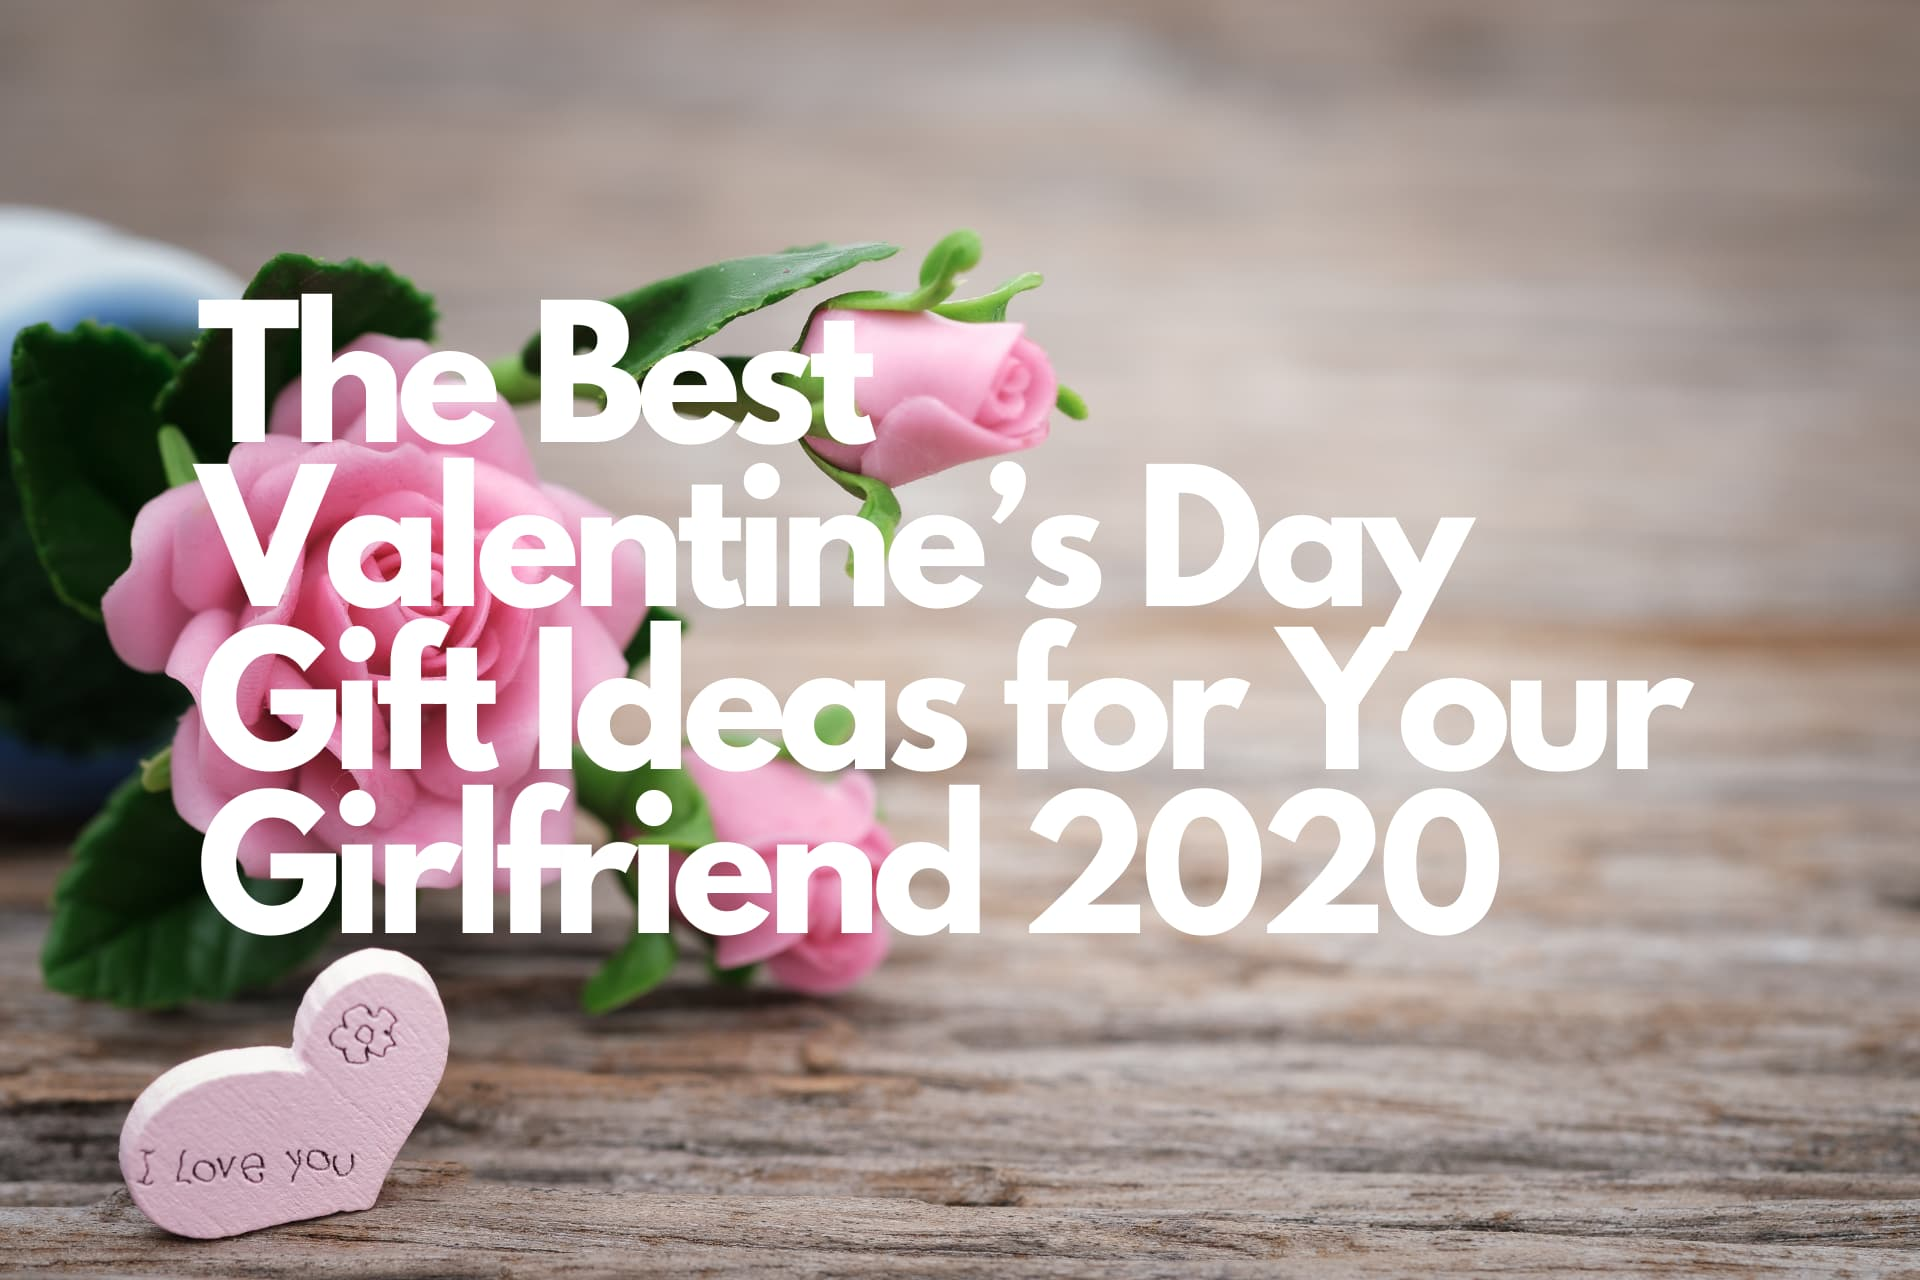 The Best Valentine's Day Gift Ideas for Your Girlfriend 2020